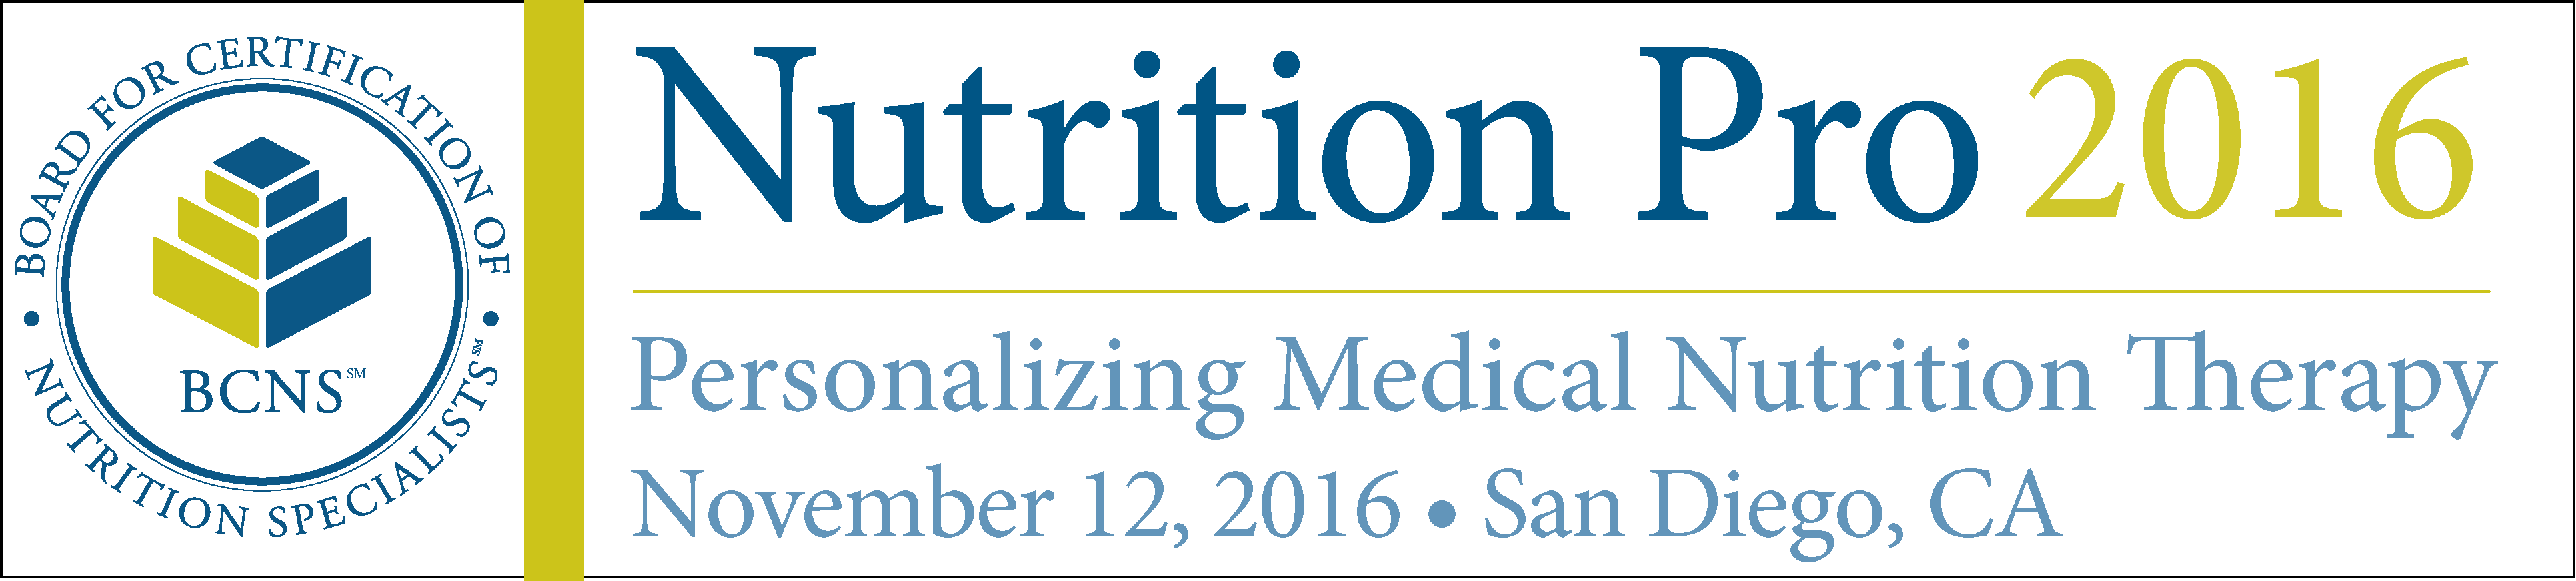 Nutrition Pro 2016 Symposium: Personalizing Medical Nutrition Therapy